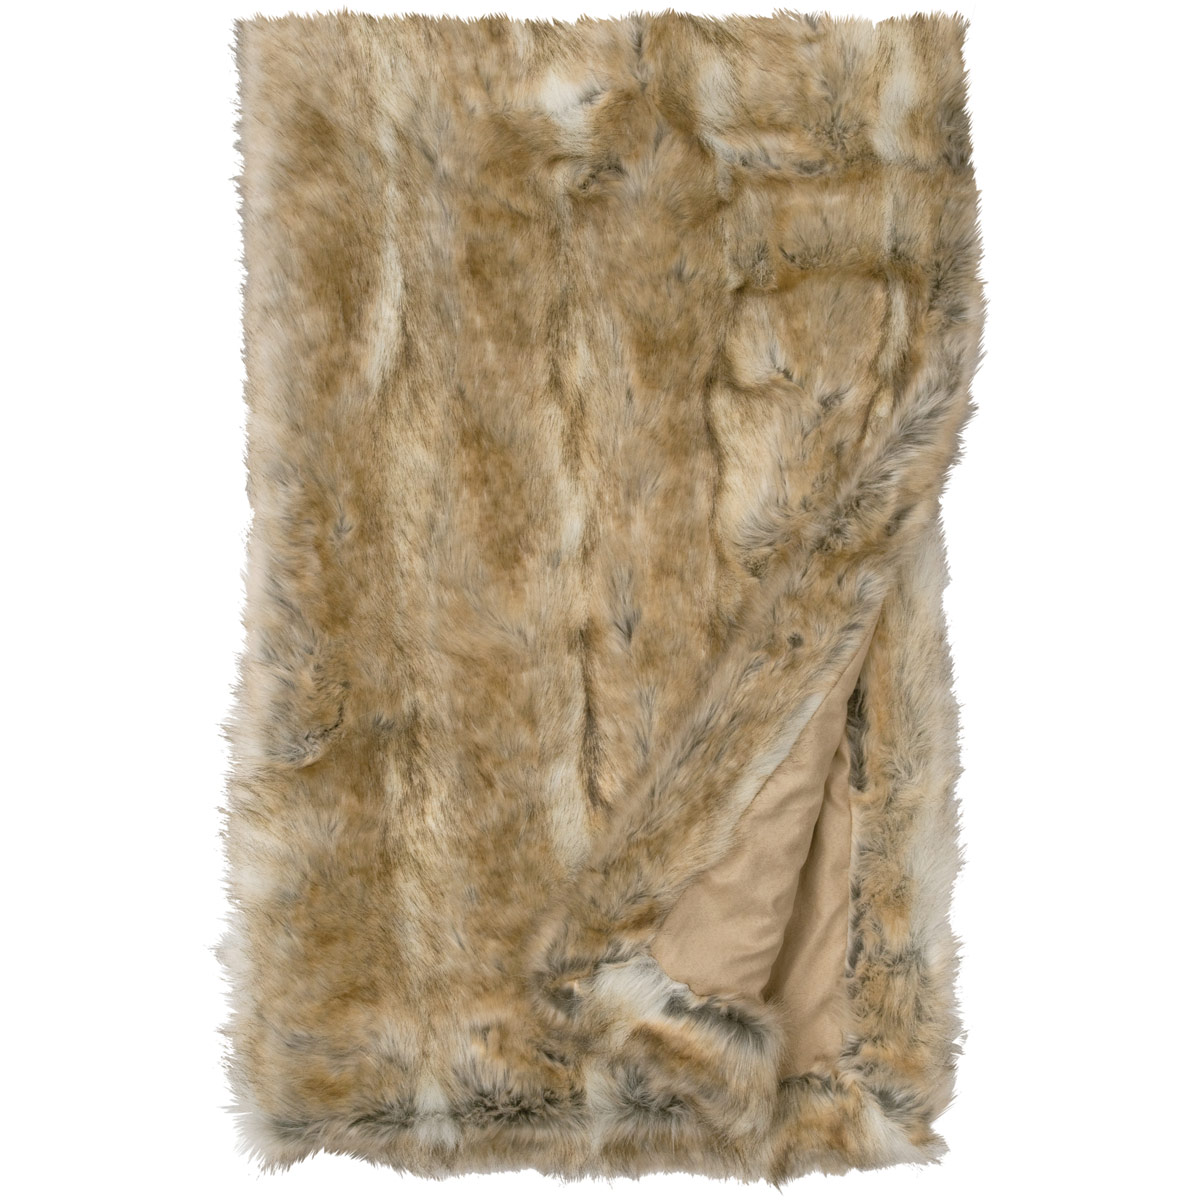 Canadian Stone Fox Fur Throw